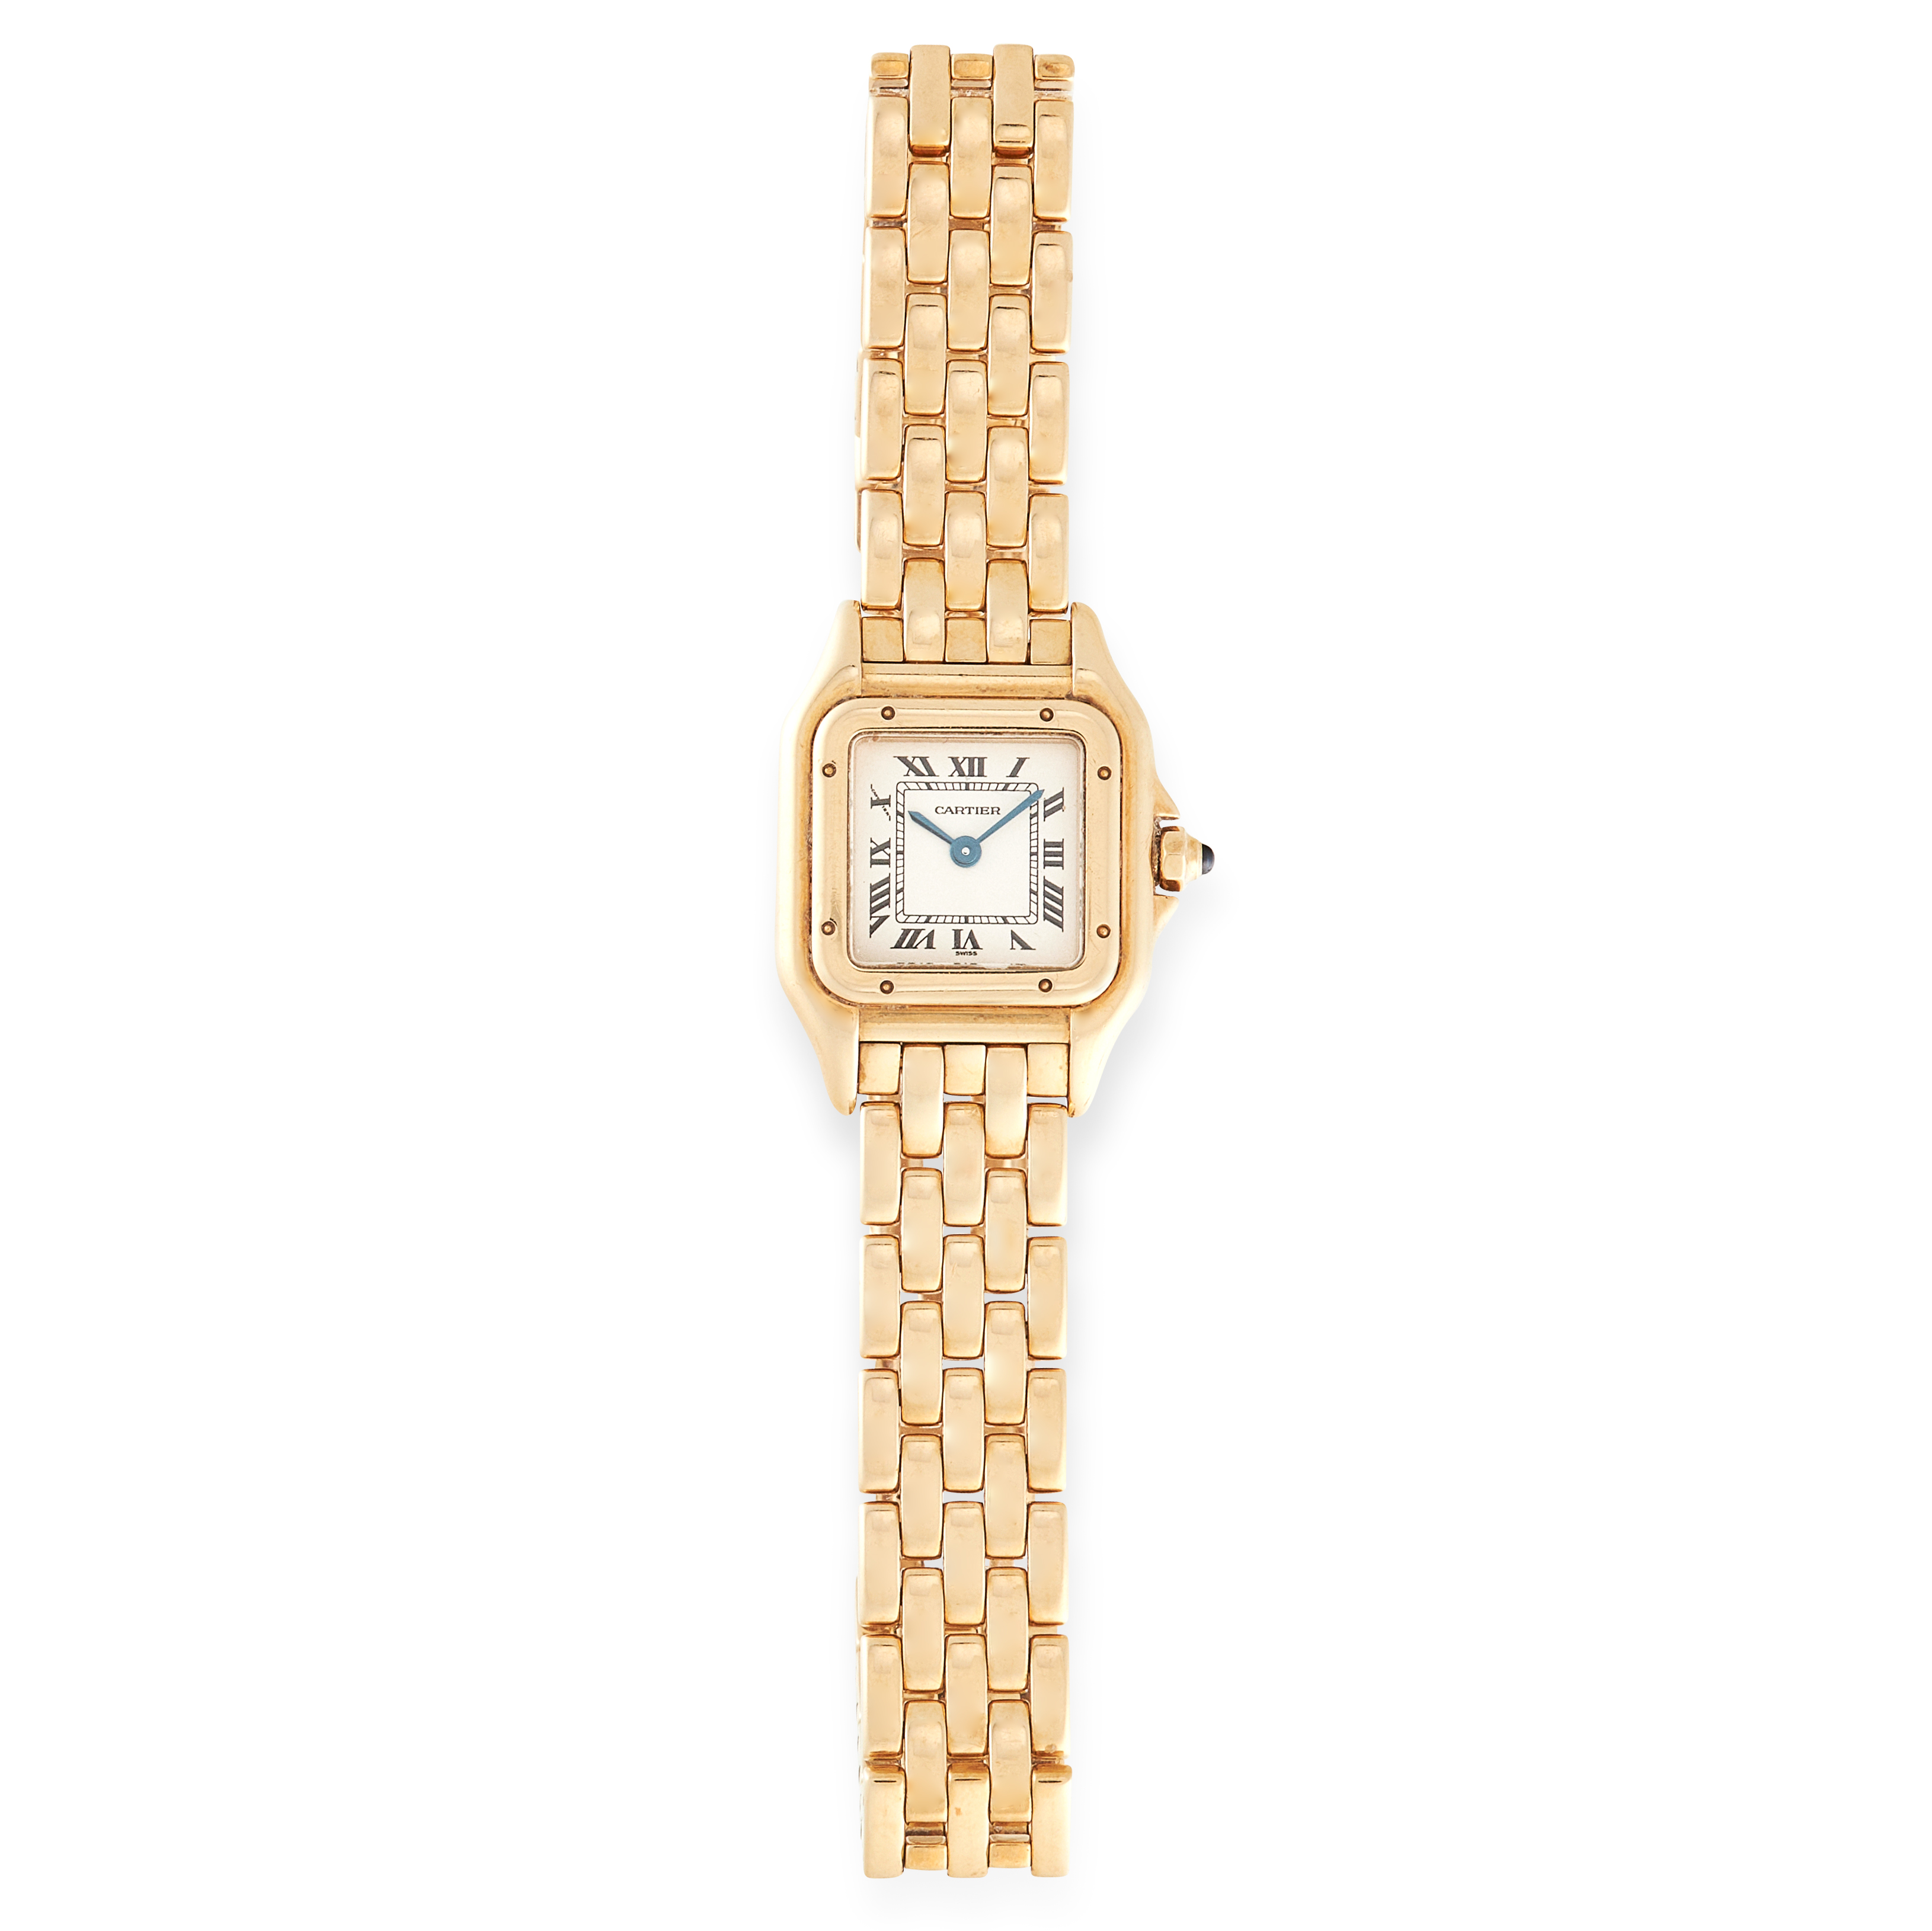 A LADIES PANTHERE DE CARTIER WRIST WATCH, CARTIER in 18ct yellow gold, the face with Roman numerals, - Image 2 of 3